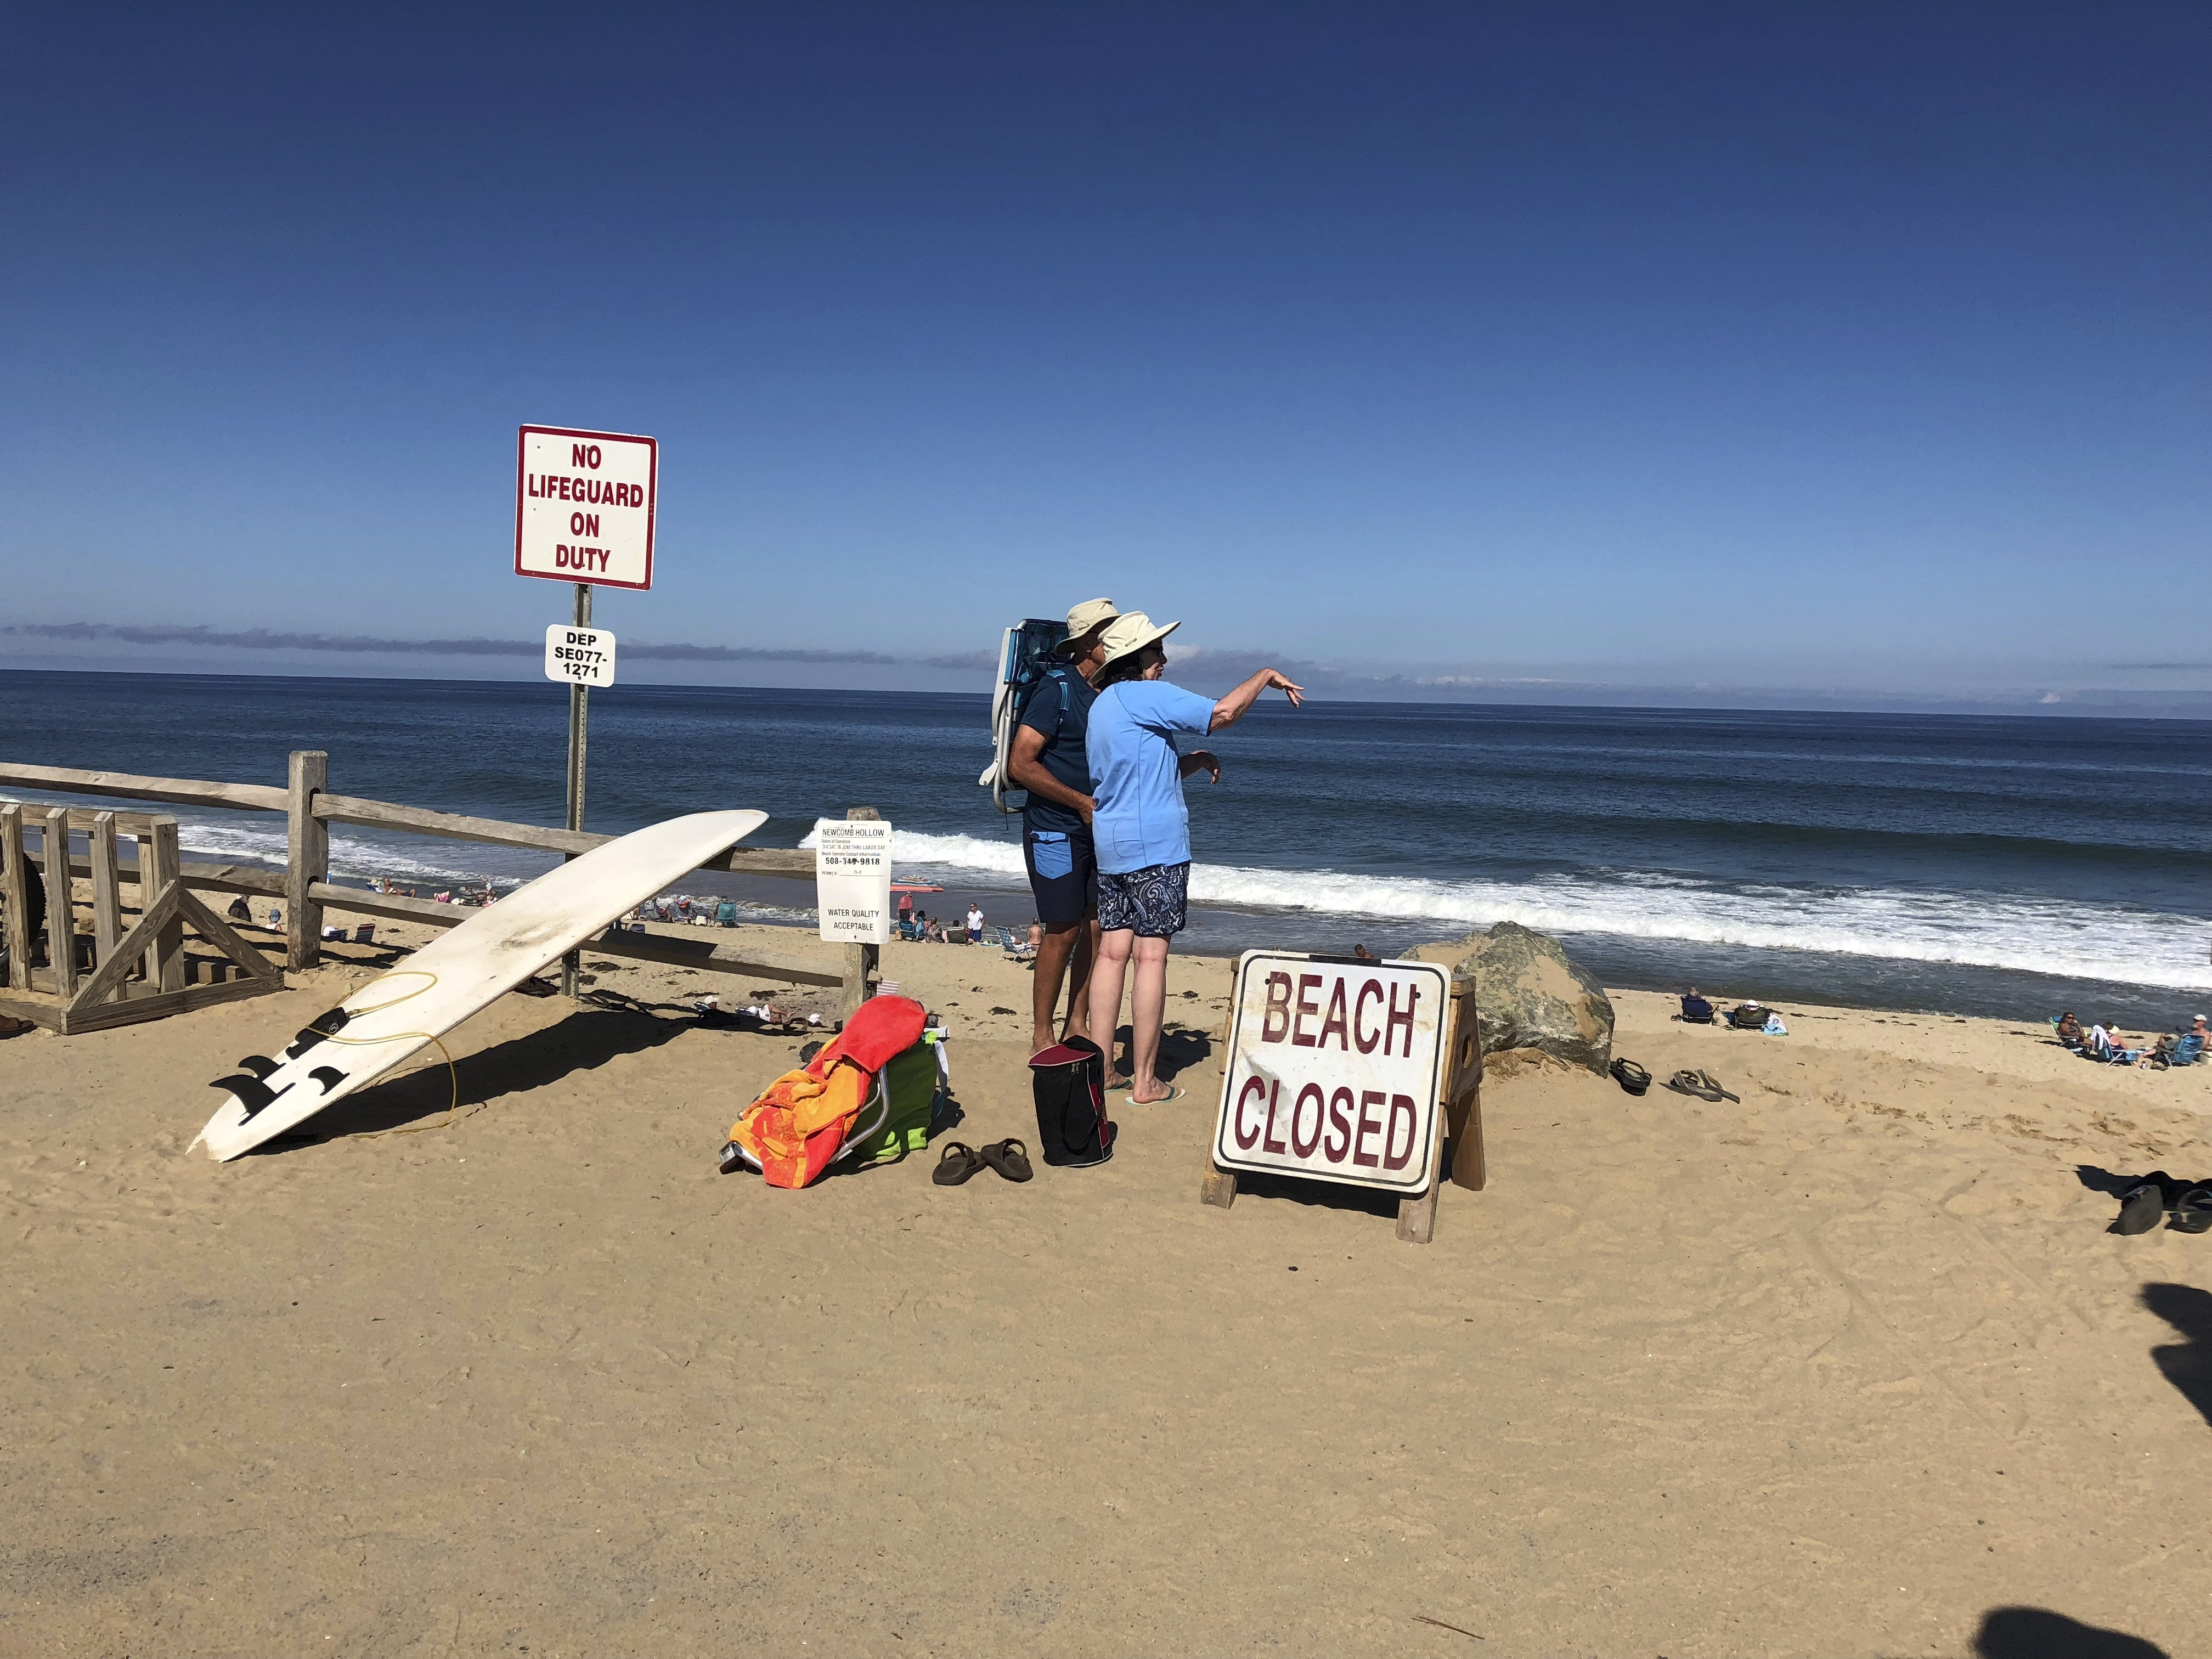 Cape Cod officials react to fatal shark attack in Wellfleet